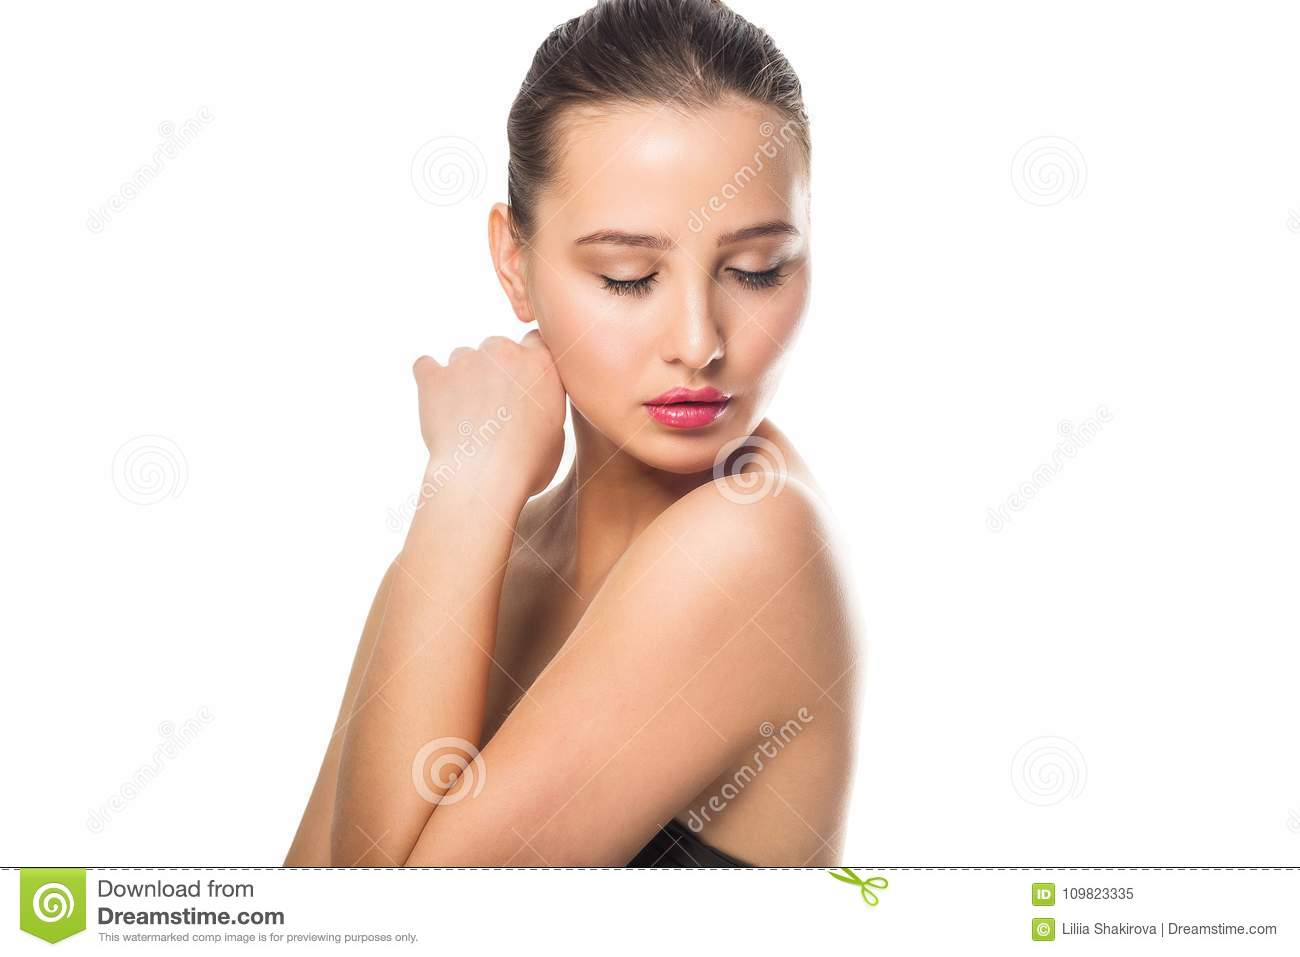 Beauty Spa Woman With Perfect Skin Portrait Beautiful Girl Looking Down On White Background